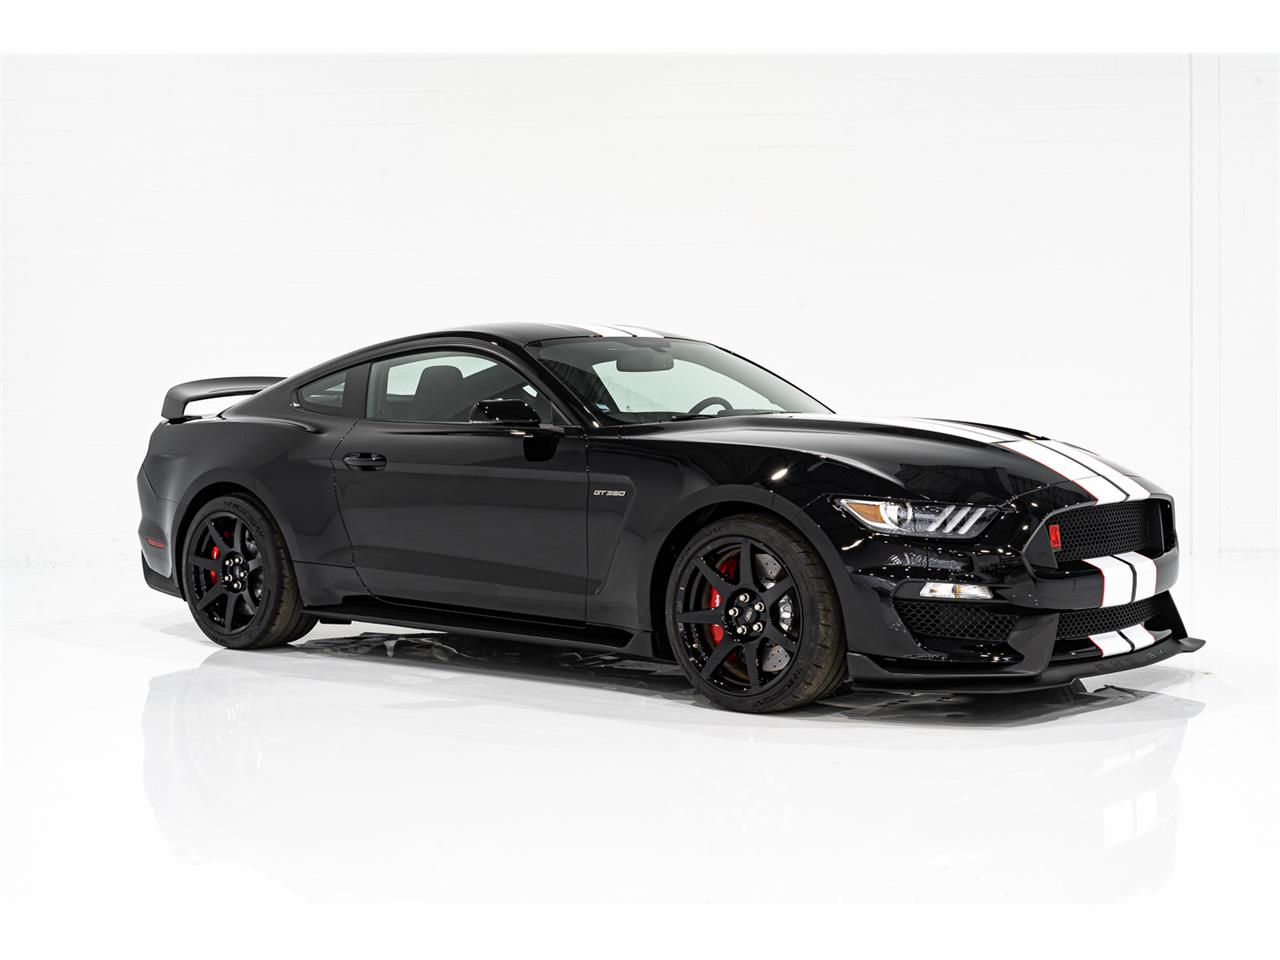 2016 Shelby GT350 (CC-1301447) for sale in Montreal, Quebec